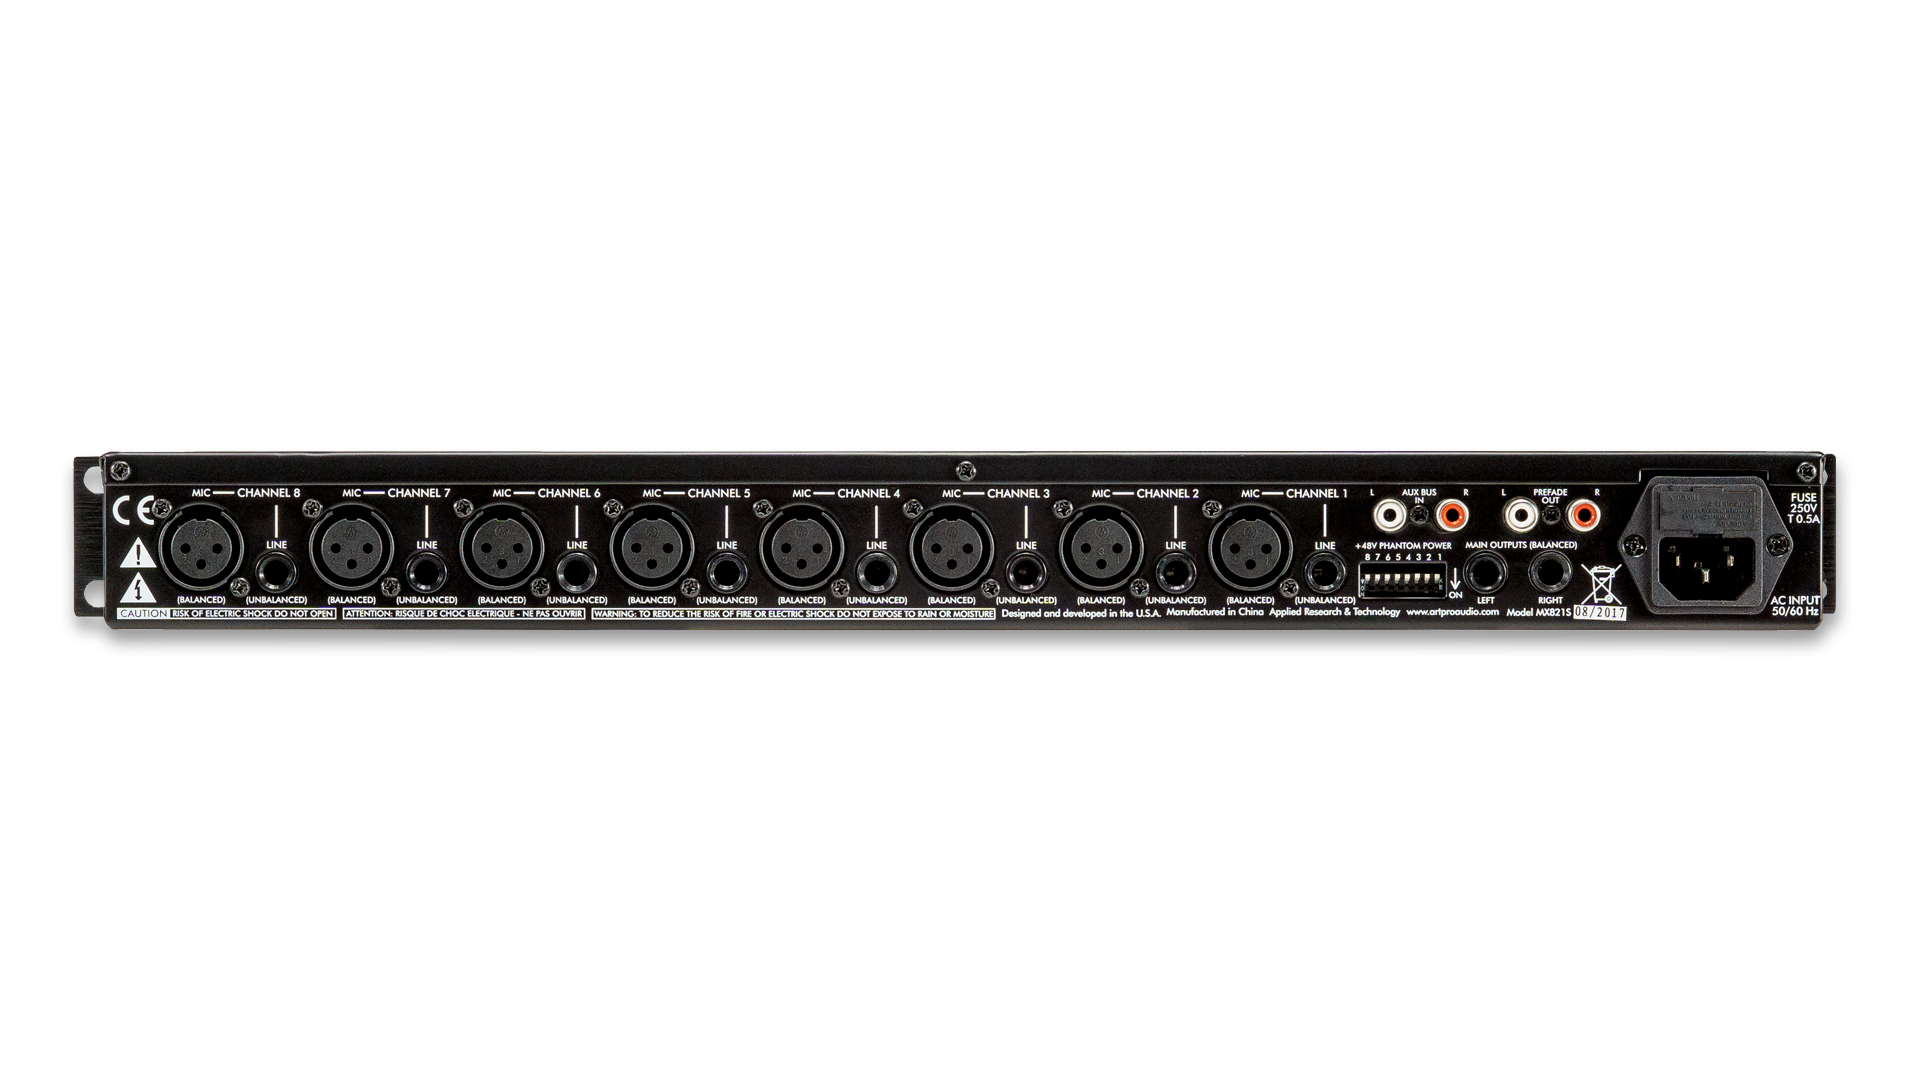 Mx821s Eight Channel Mic Line Mixer With Stereo Outputs Art Pro For Microphone 2 Channels